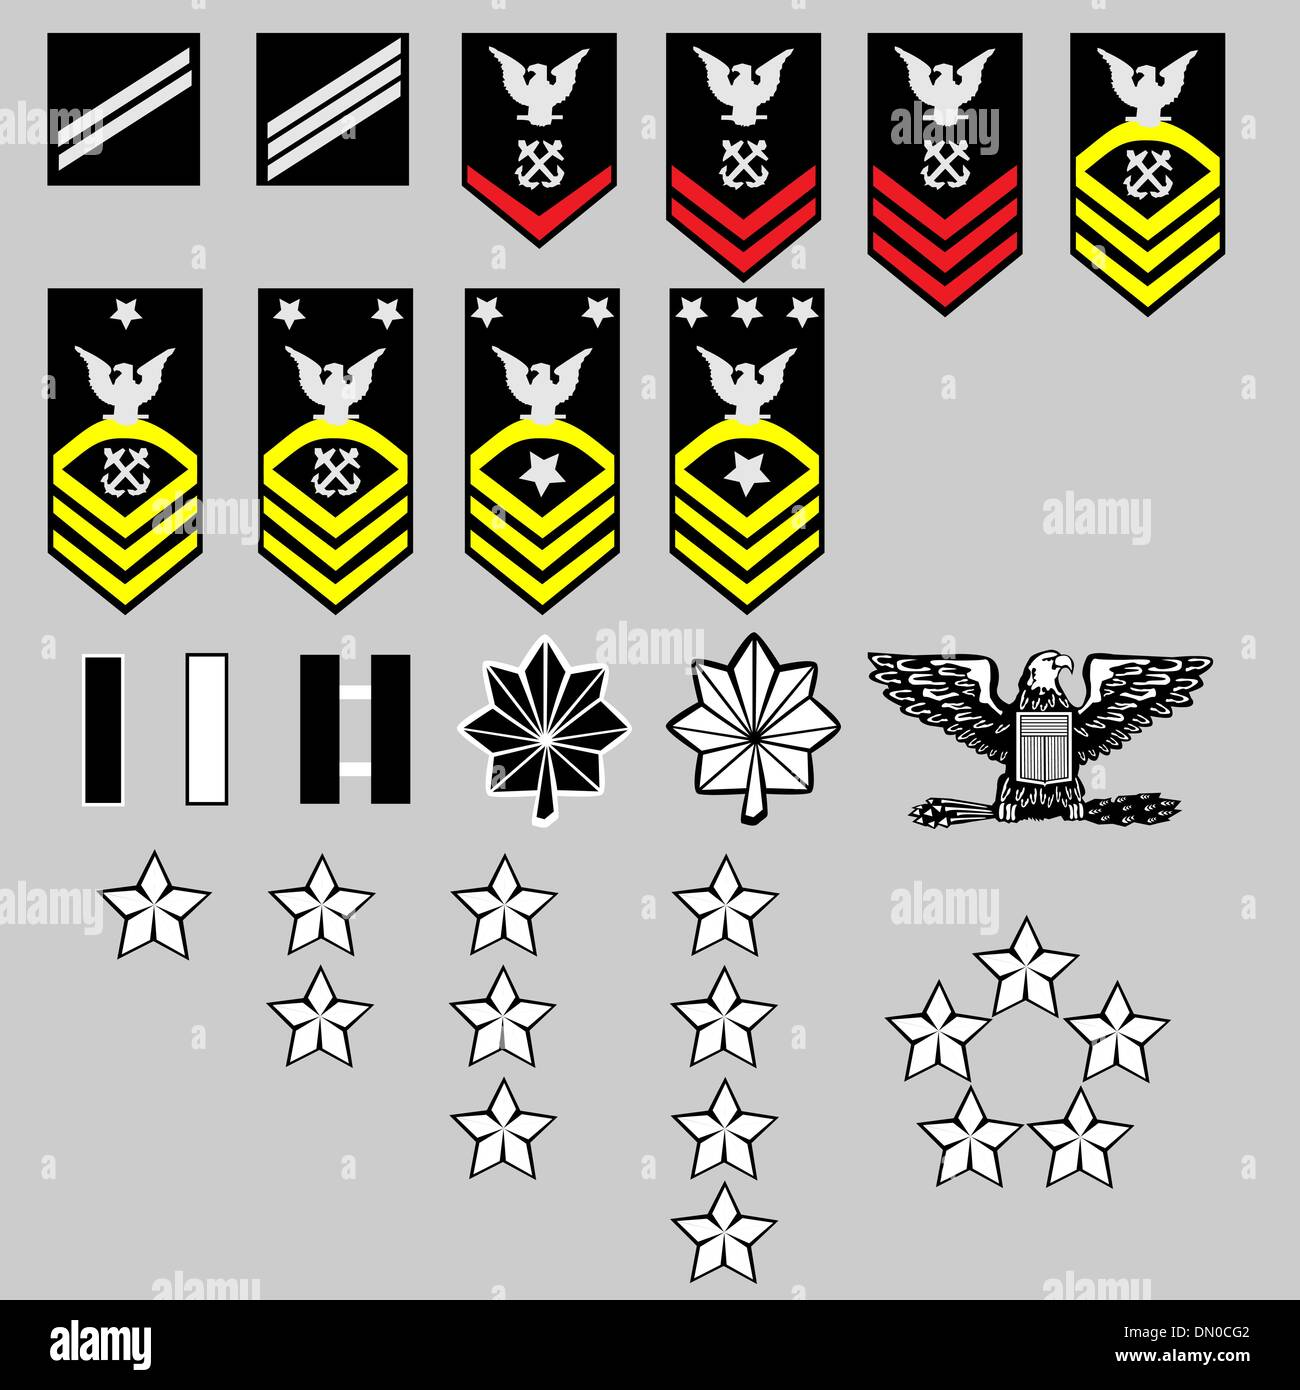 Us navy rank insignia stock vector art illustration vector image us navy rank insignia buycottarizona Image collections